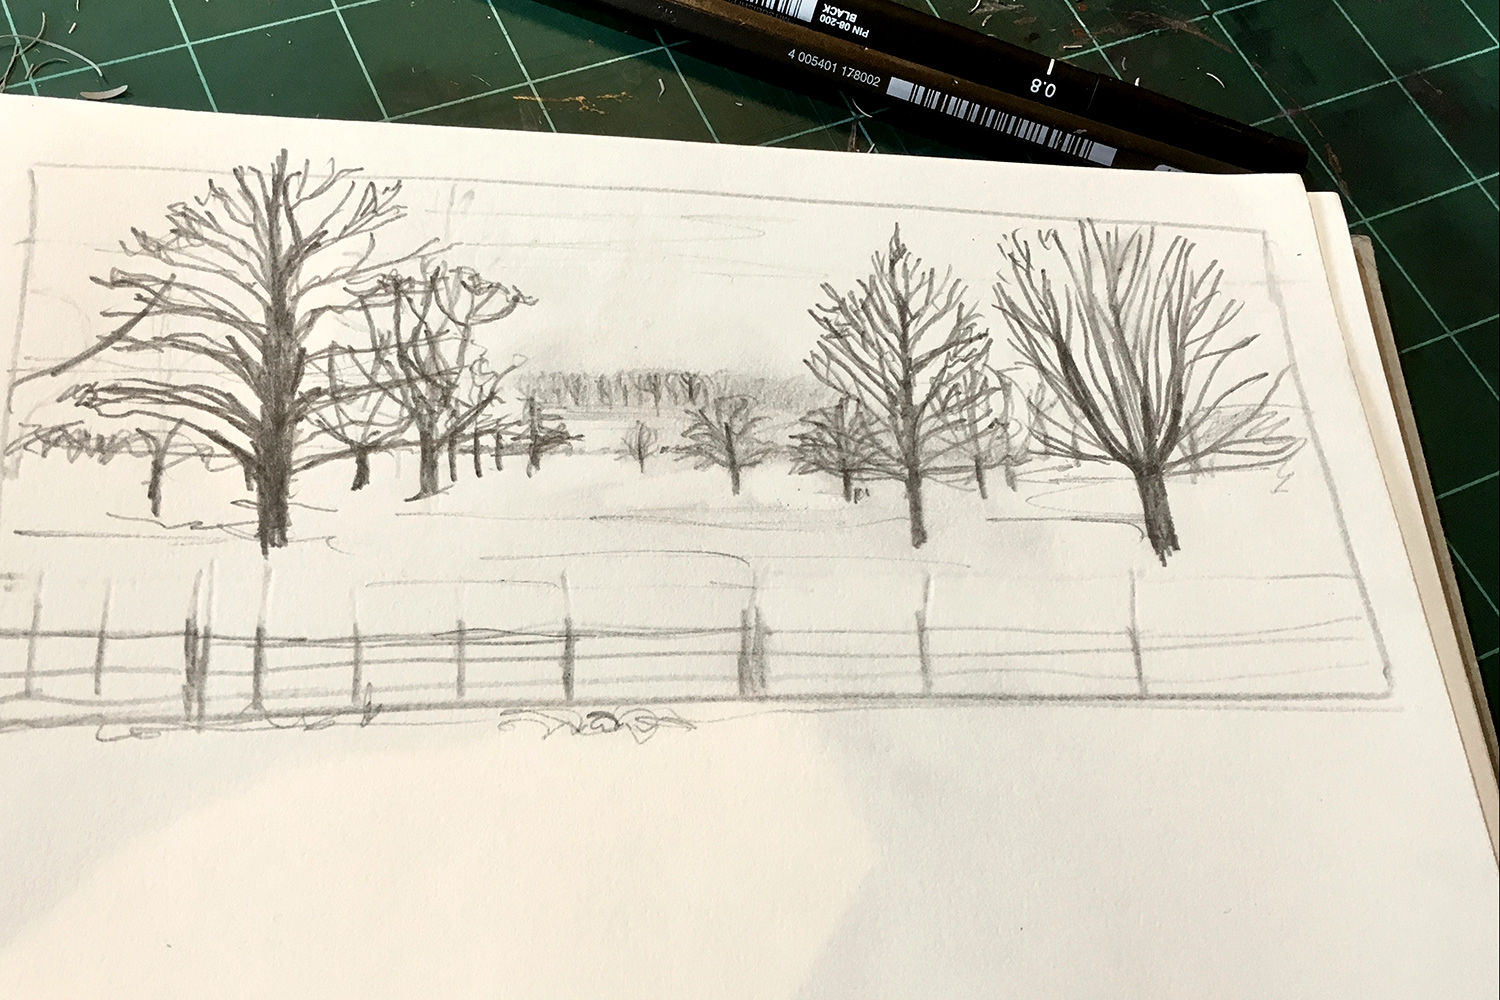 My initial pencil sketch of the Gunby landscape